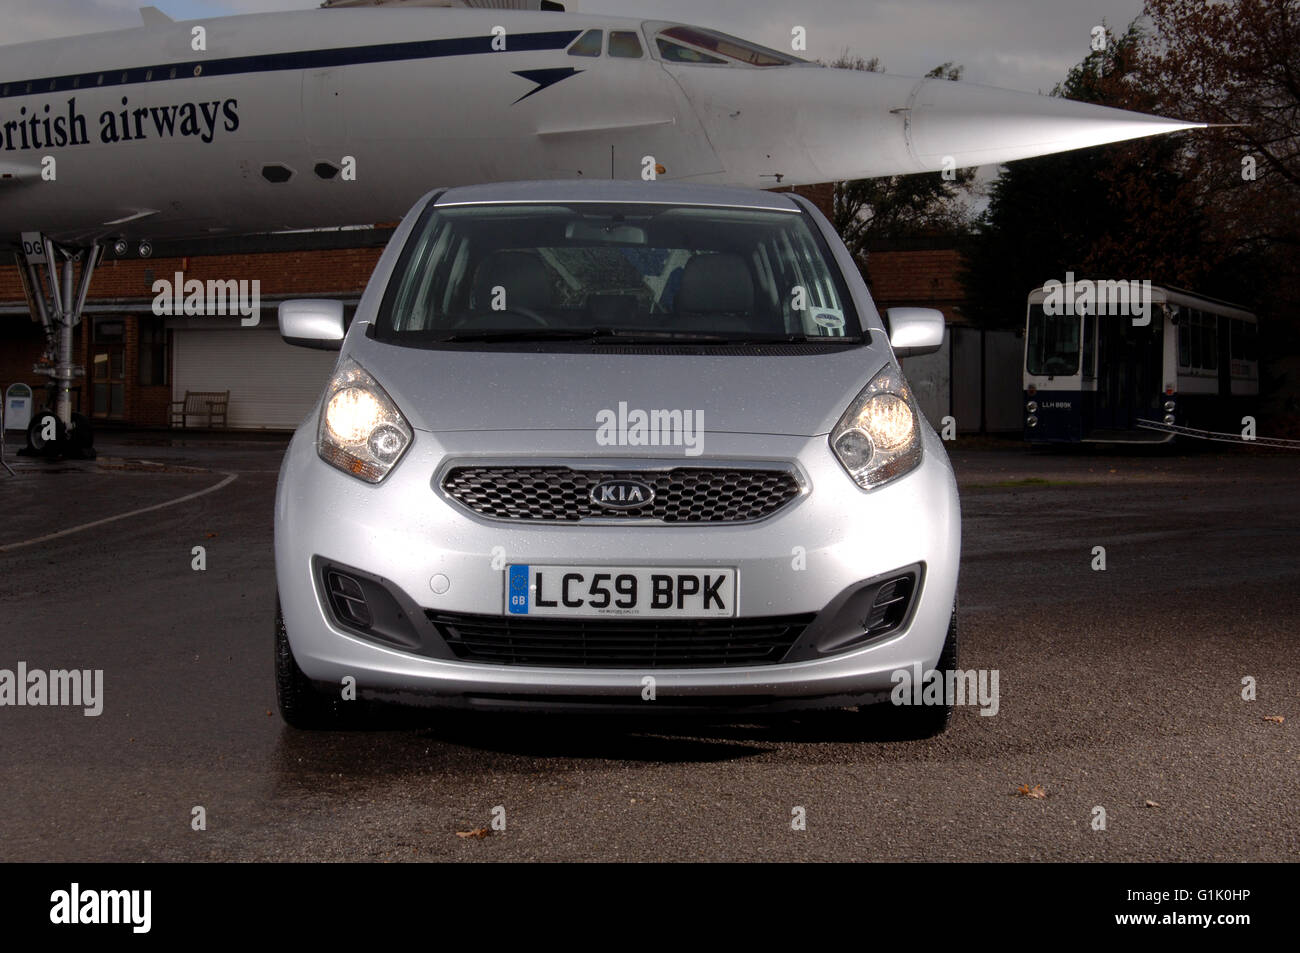 2009 Kia Venga small hatchback car - Stock Image